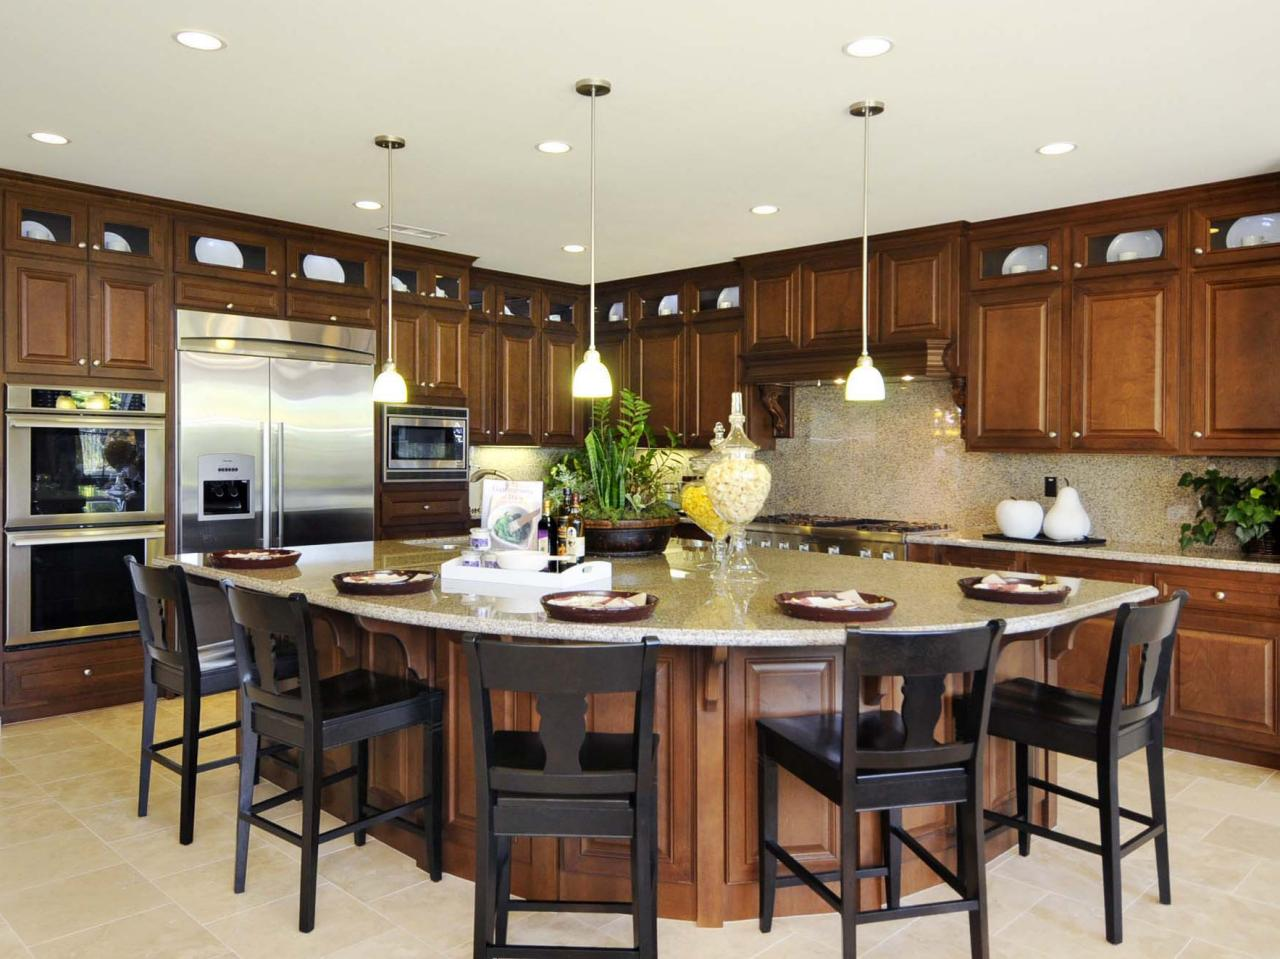 Amusing Design Of The Kitchen Areas With Bronw Wooden Cabinets Added With White Floor And Kitchen Island Ideas